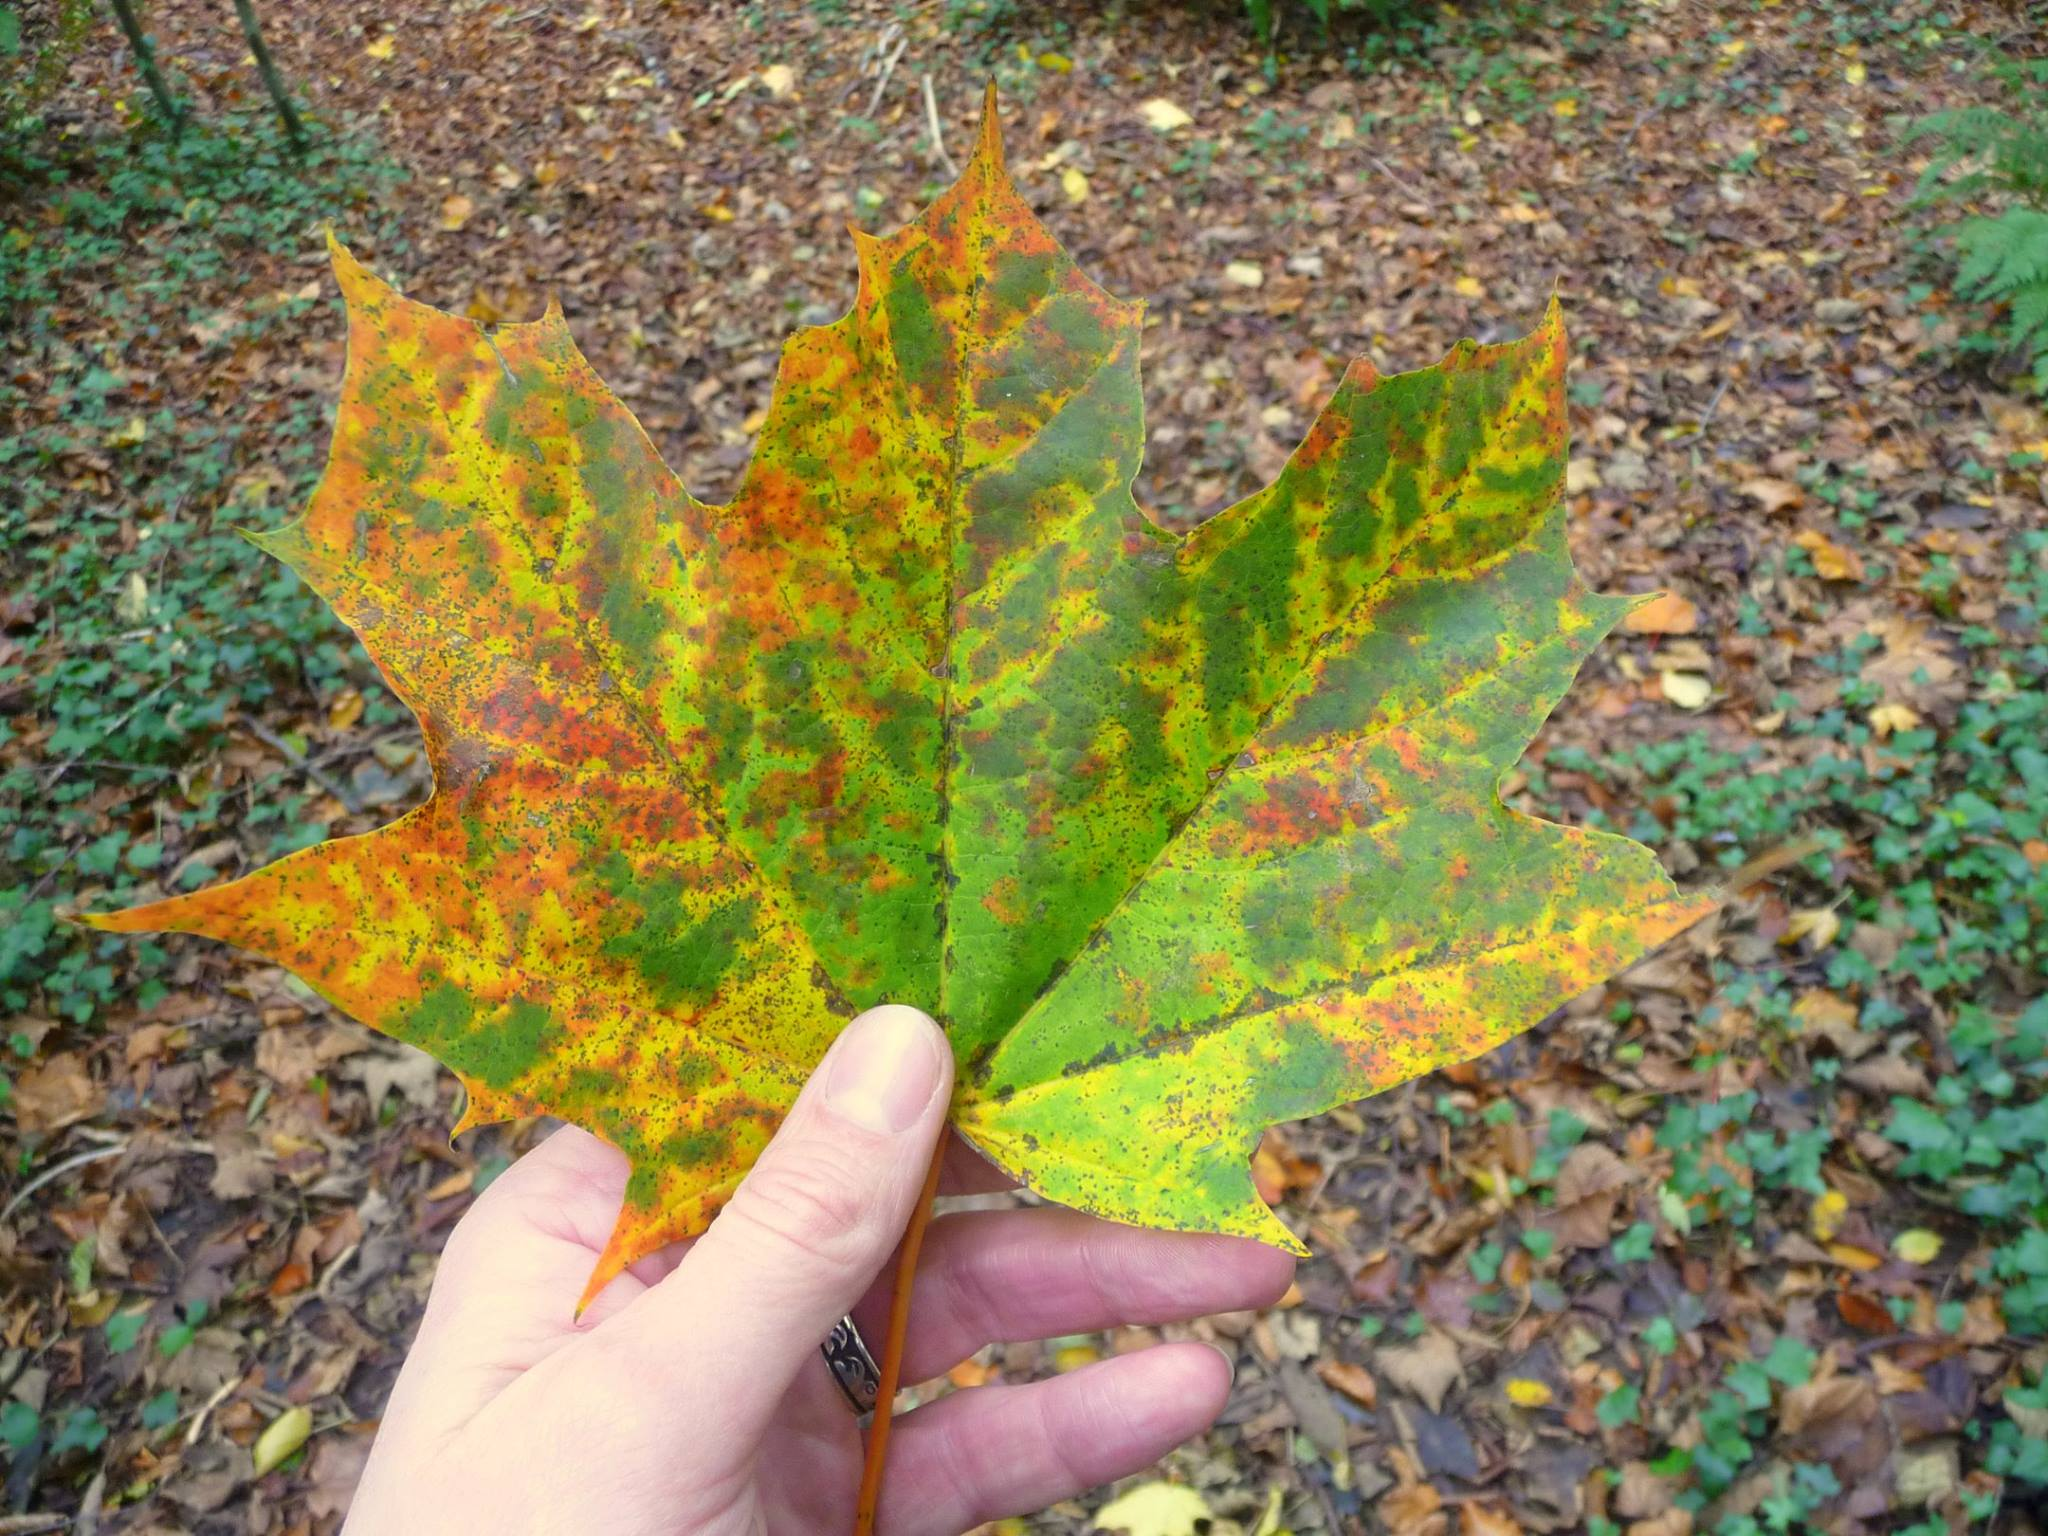 A maple leaf with yellow and red colouring